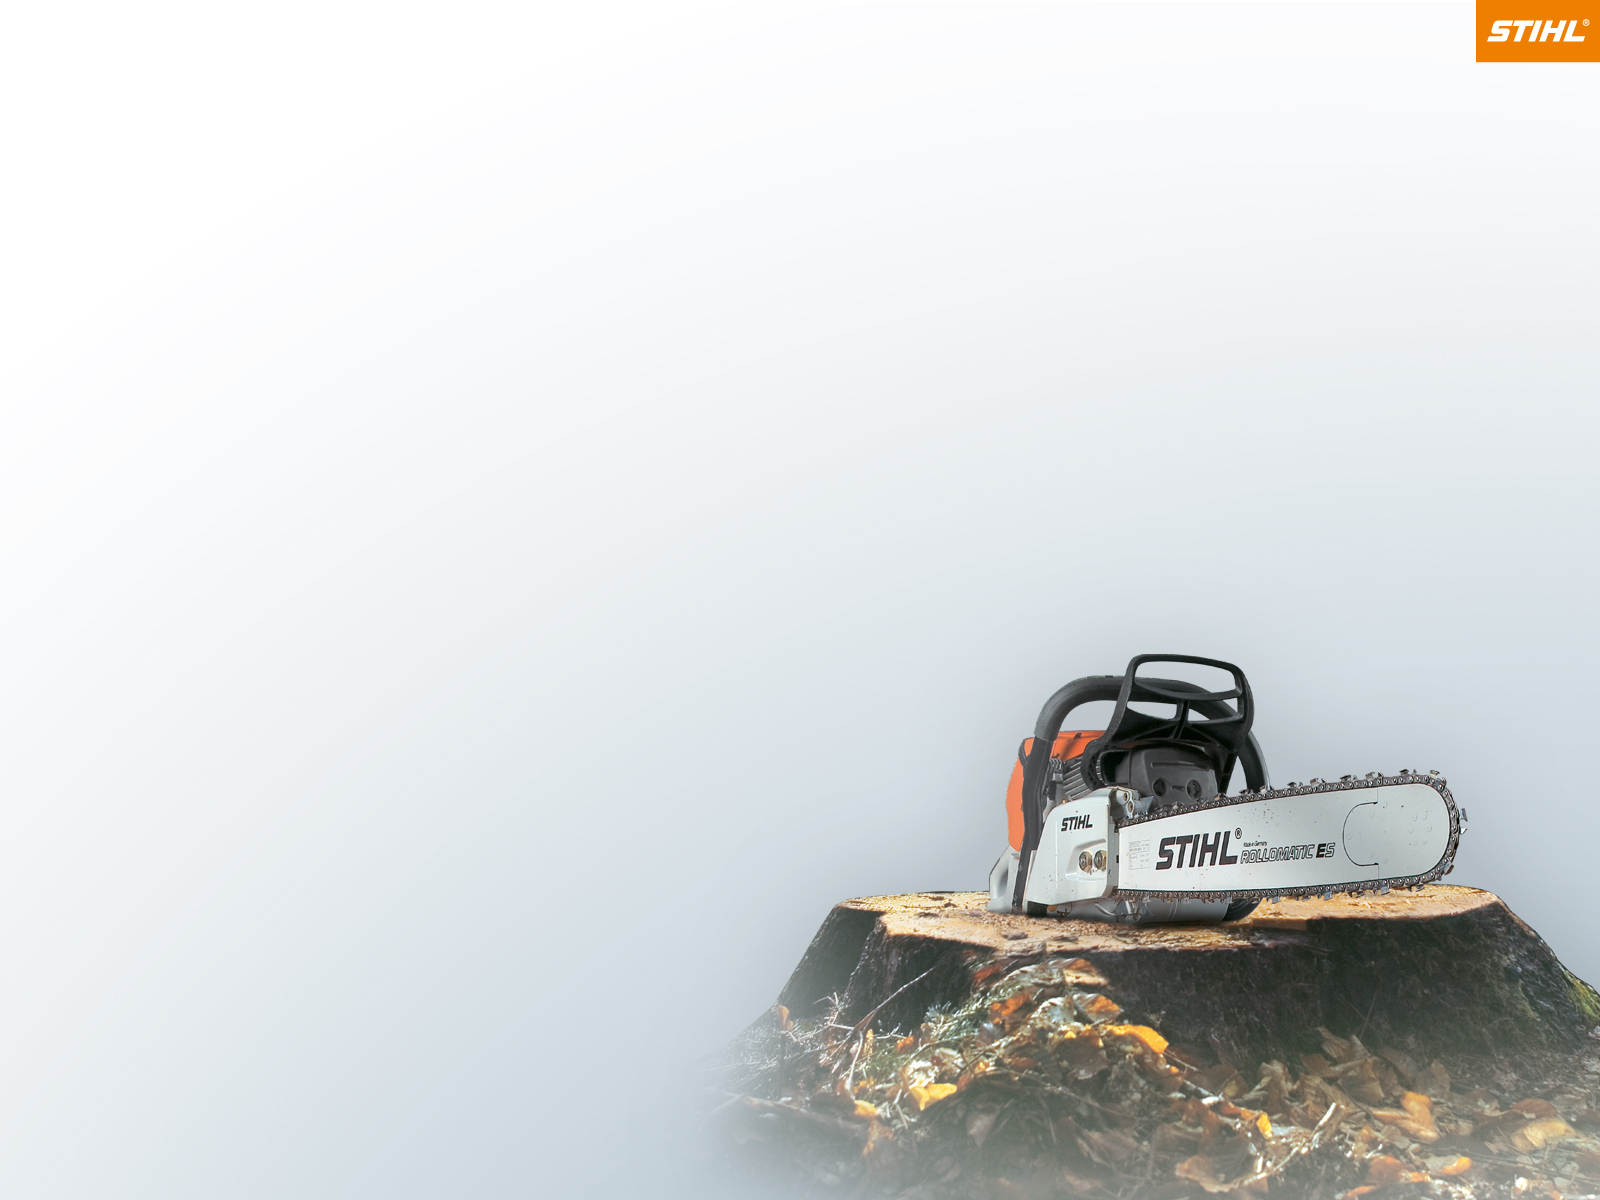 Our Wallpaper for more STIHL on your screen STIHL STIHL 1600x1200